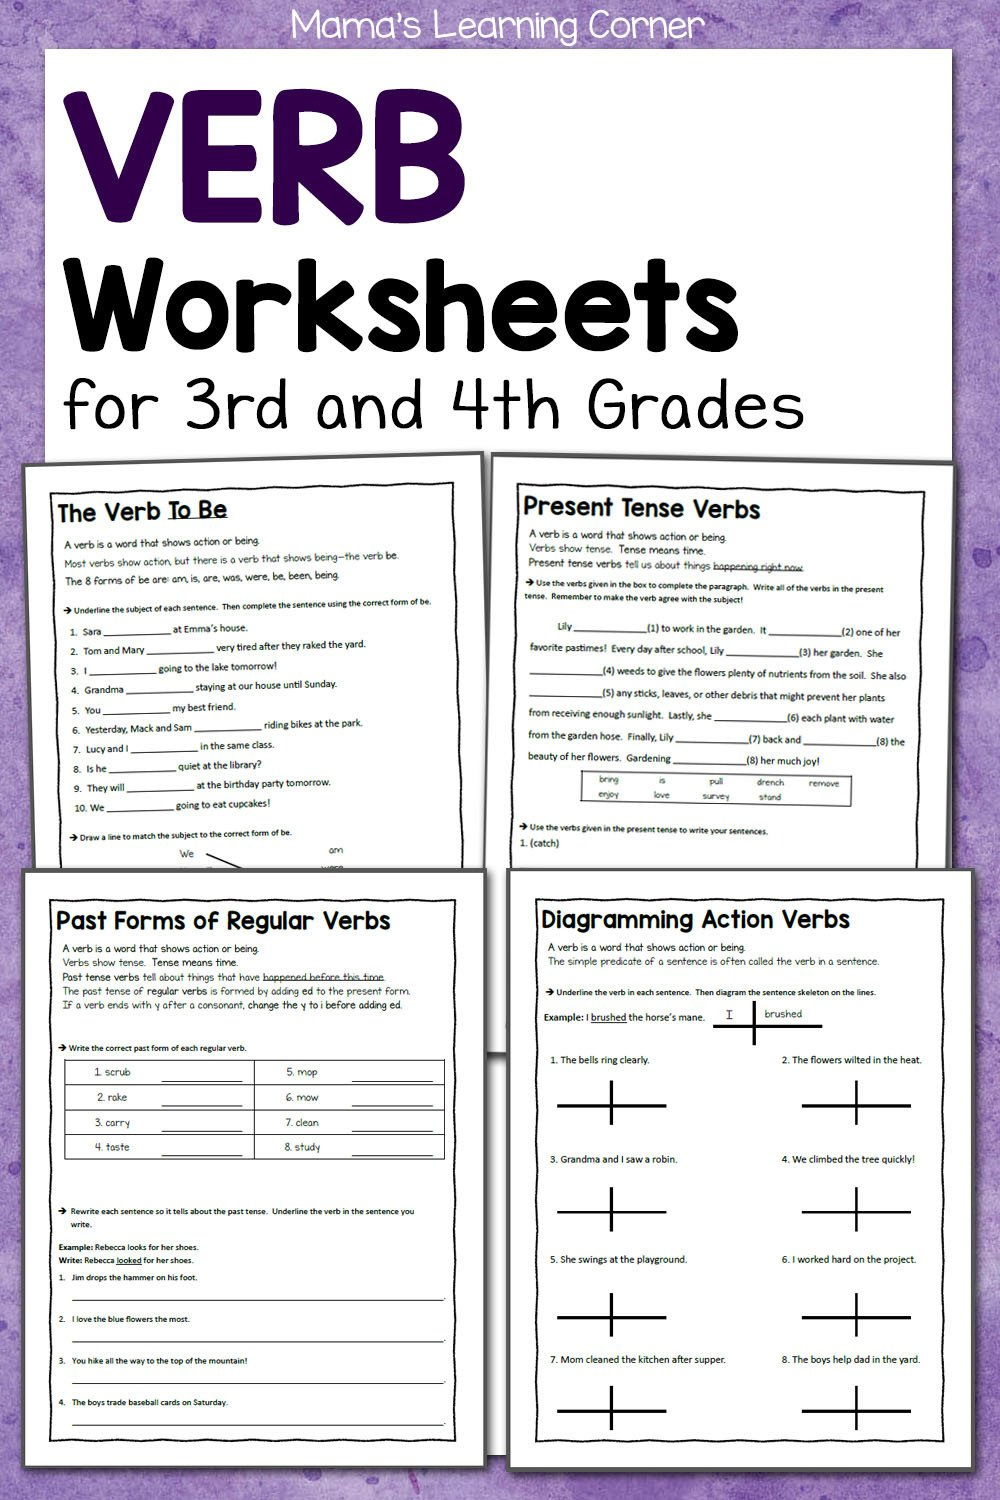 Verb Worksheets for 3rd and 4th Grades Mamas Learning Corner